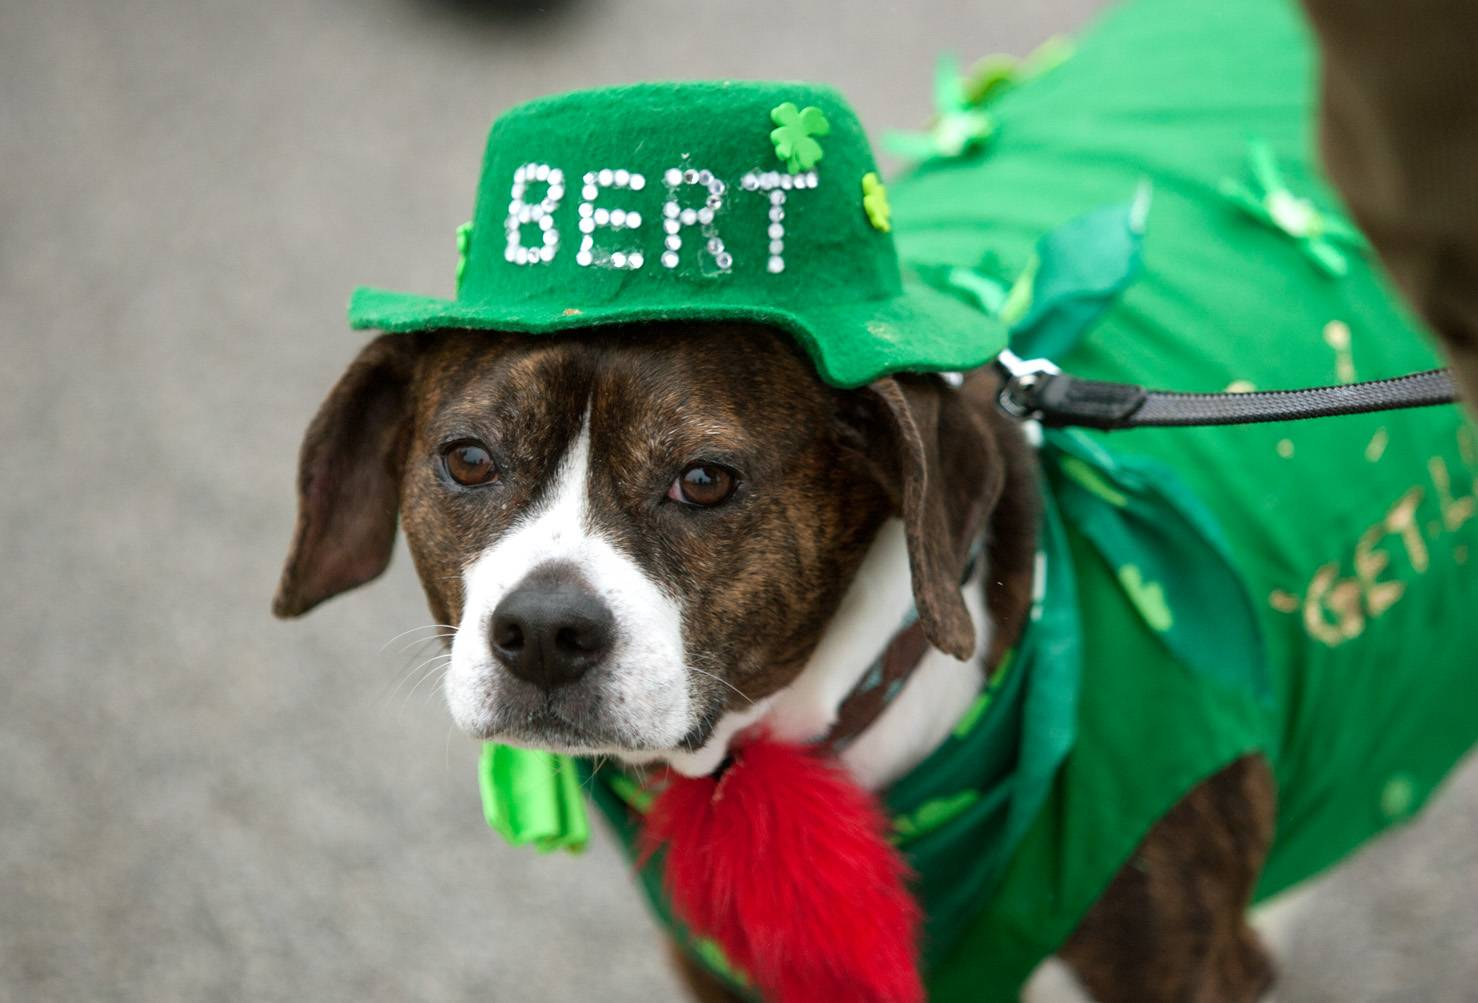 Even pups get into the spirit at Naperville's St. Patrick's Day parade.